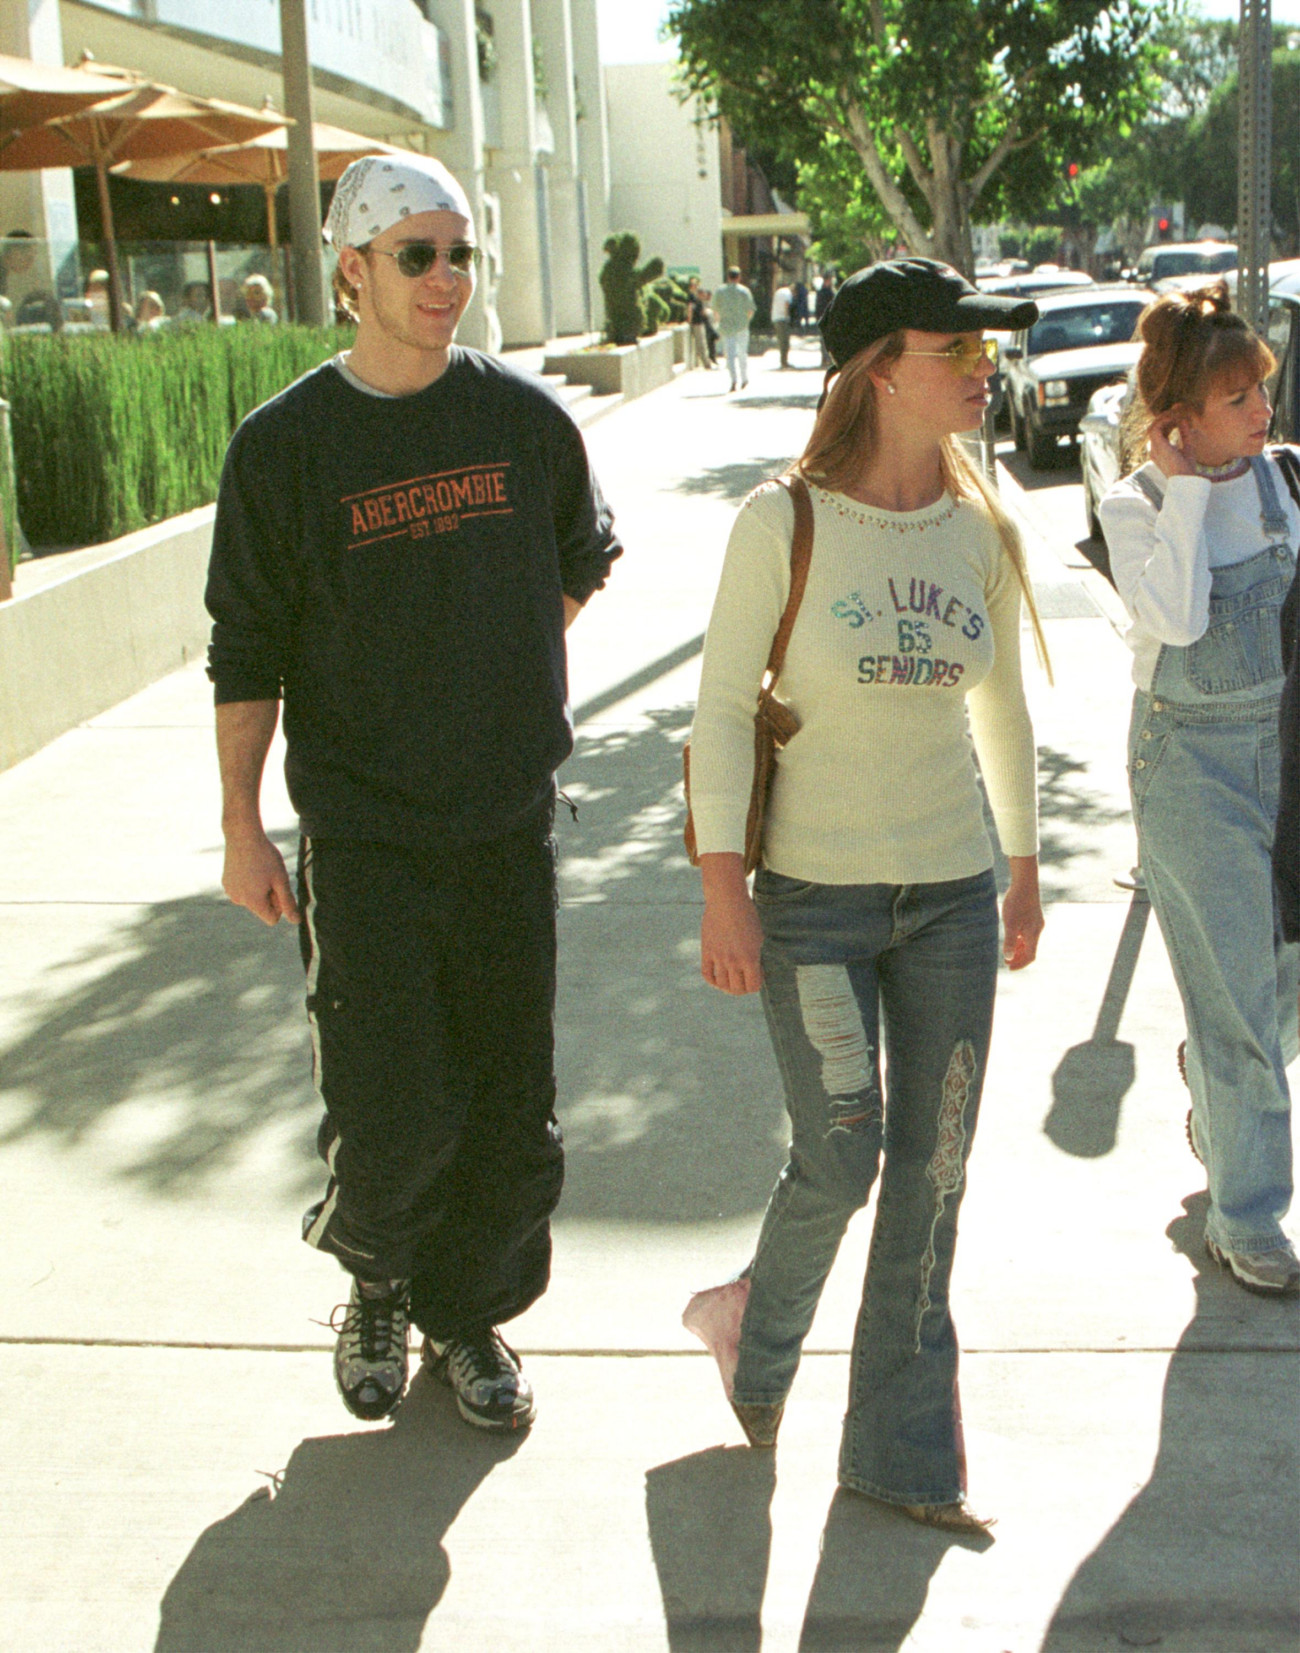 383913 01: FILE PHOTO: Pop singer Britney Spears and Justin Timberlake of ''N SYNC leave the Newsroom restaurant after having lunch together January 4, 2001 in Beverly Hills, CA. Spears recently bought a new home in Hollywood Hills to share with Justin. (Photo by Jason Kirk/Online USA)